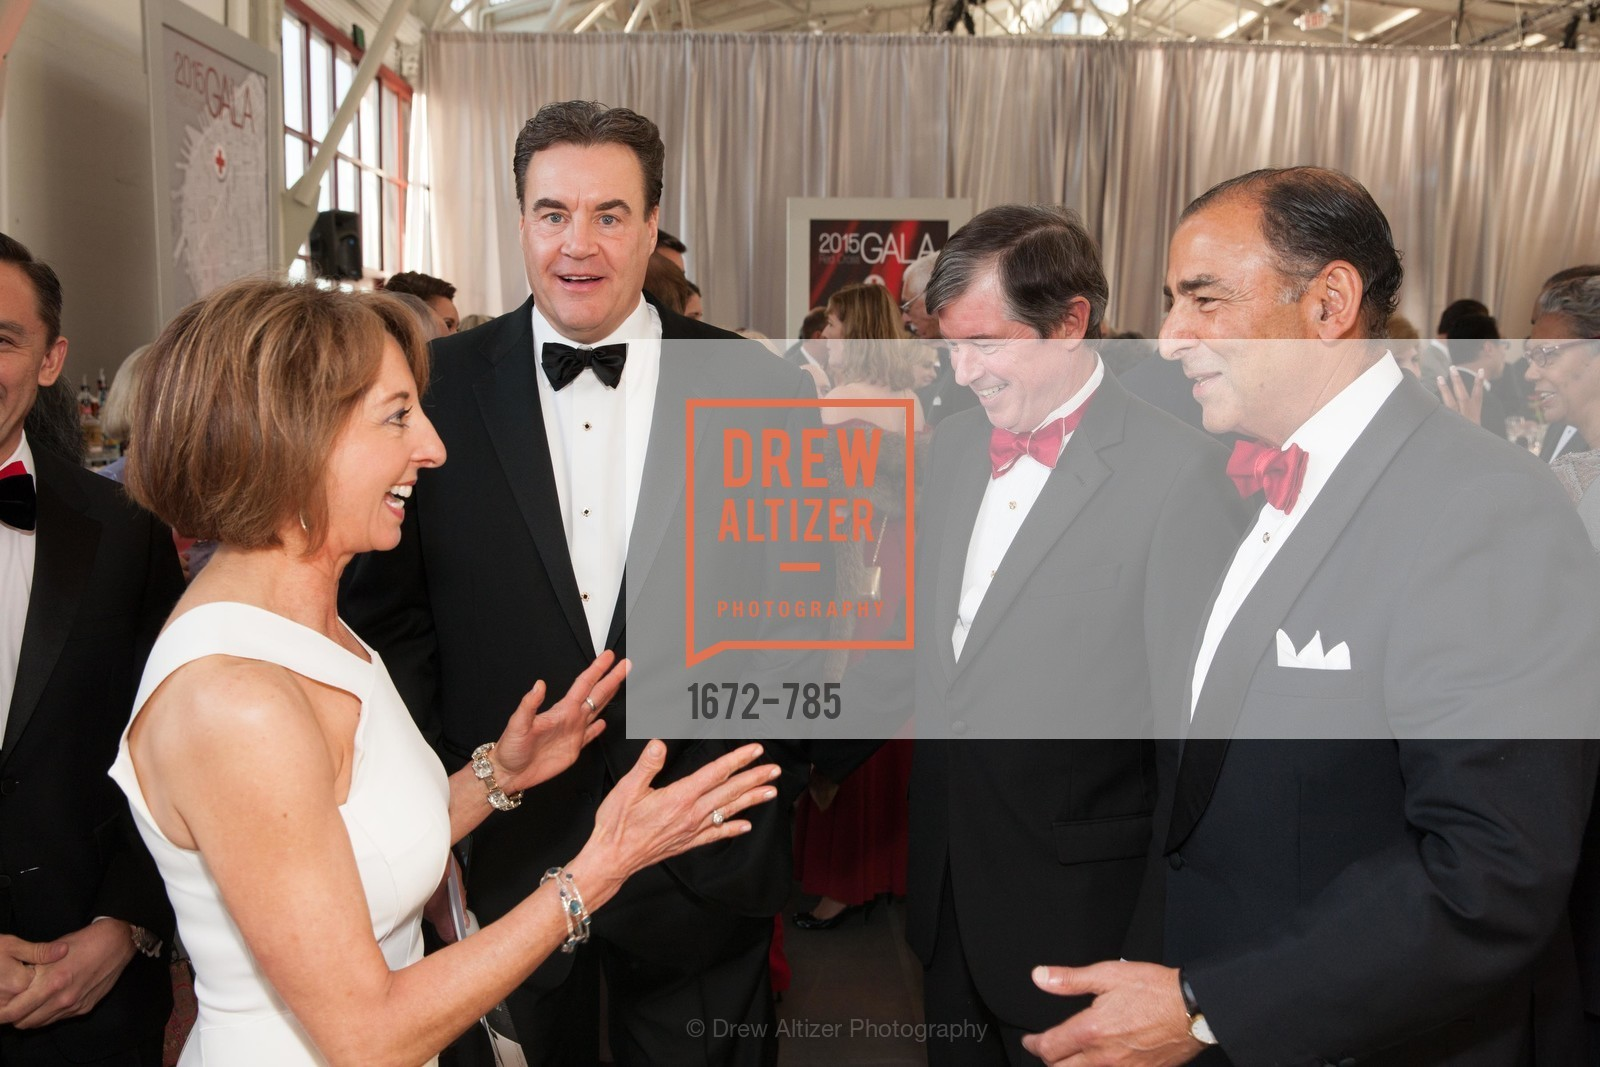 Teresa Briggs, Jim Messemer, Anthony Early, Alexander Mehran, 2015 RED CROSS Gala, US, April 11th, 2015,Drew Altizer, Drew Altizer Photography, full-service agency, private events, San Francisco photographer, photographer california